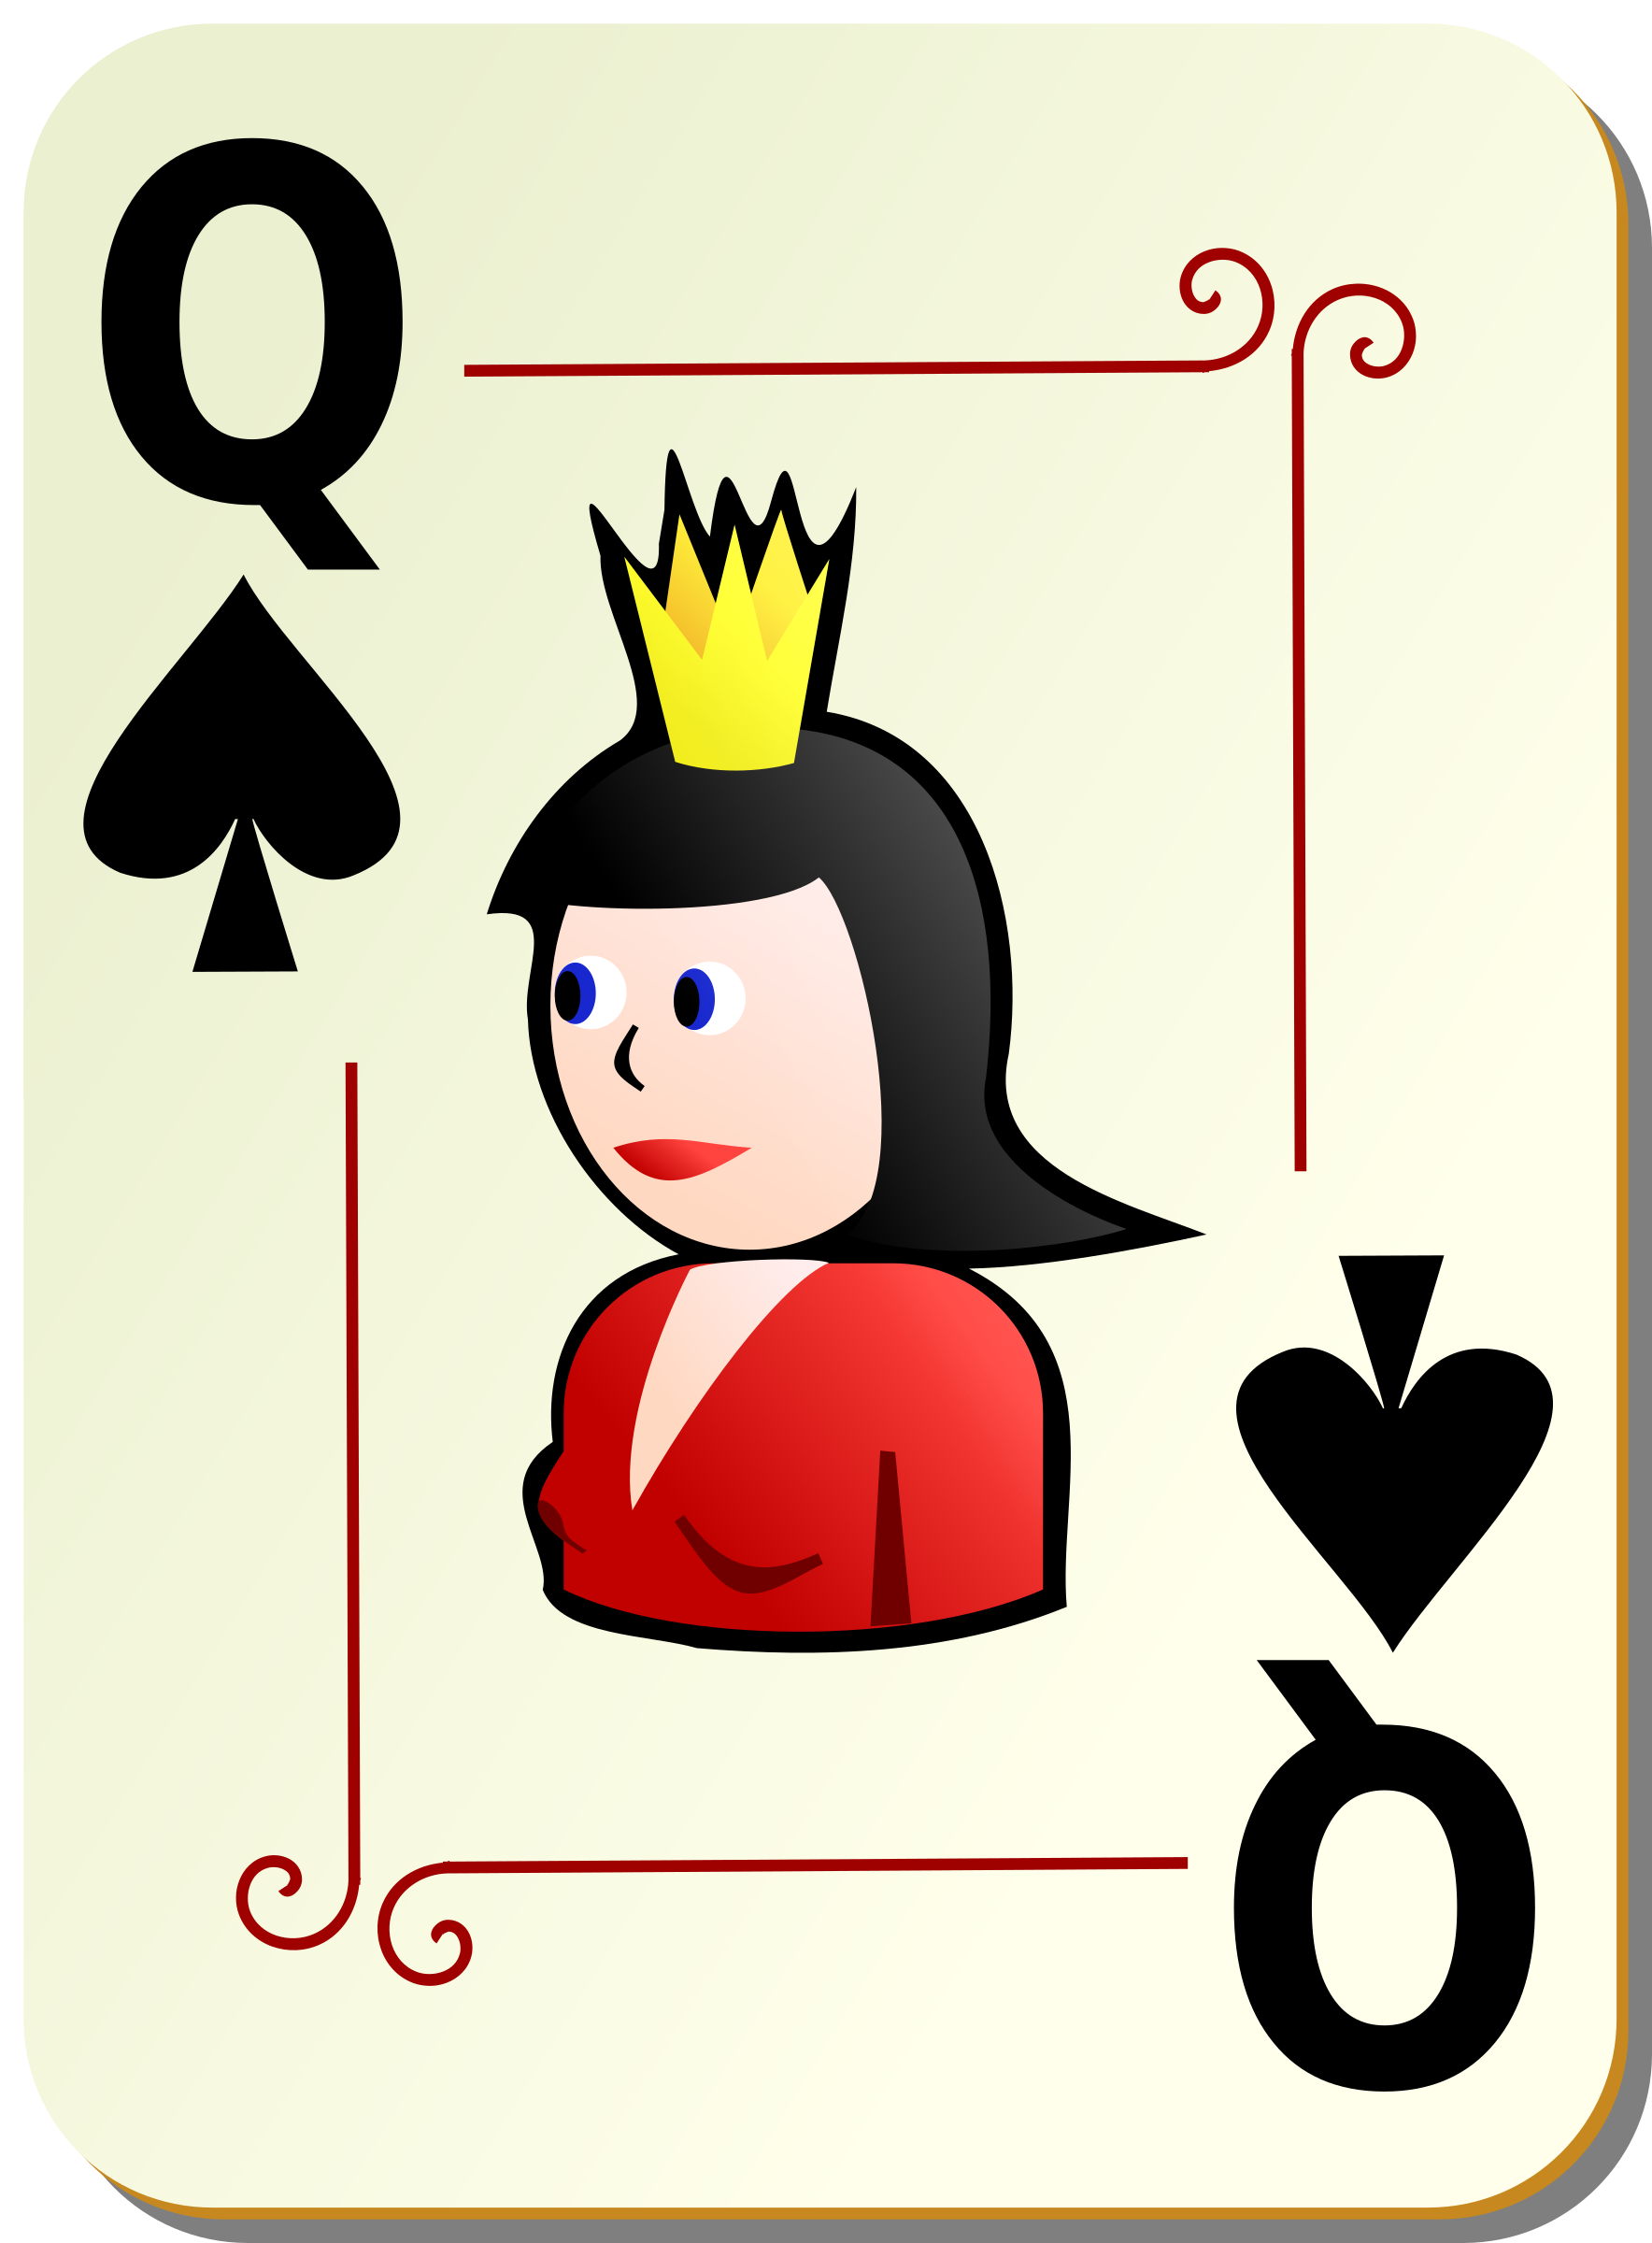 Ornamental deck: Queen of spades by nicubunu